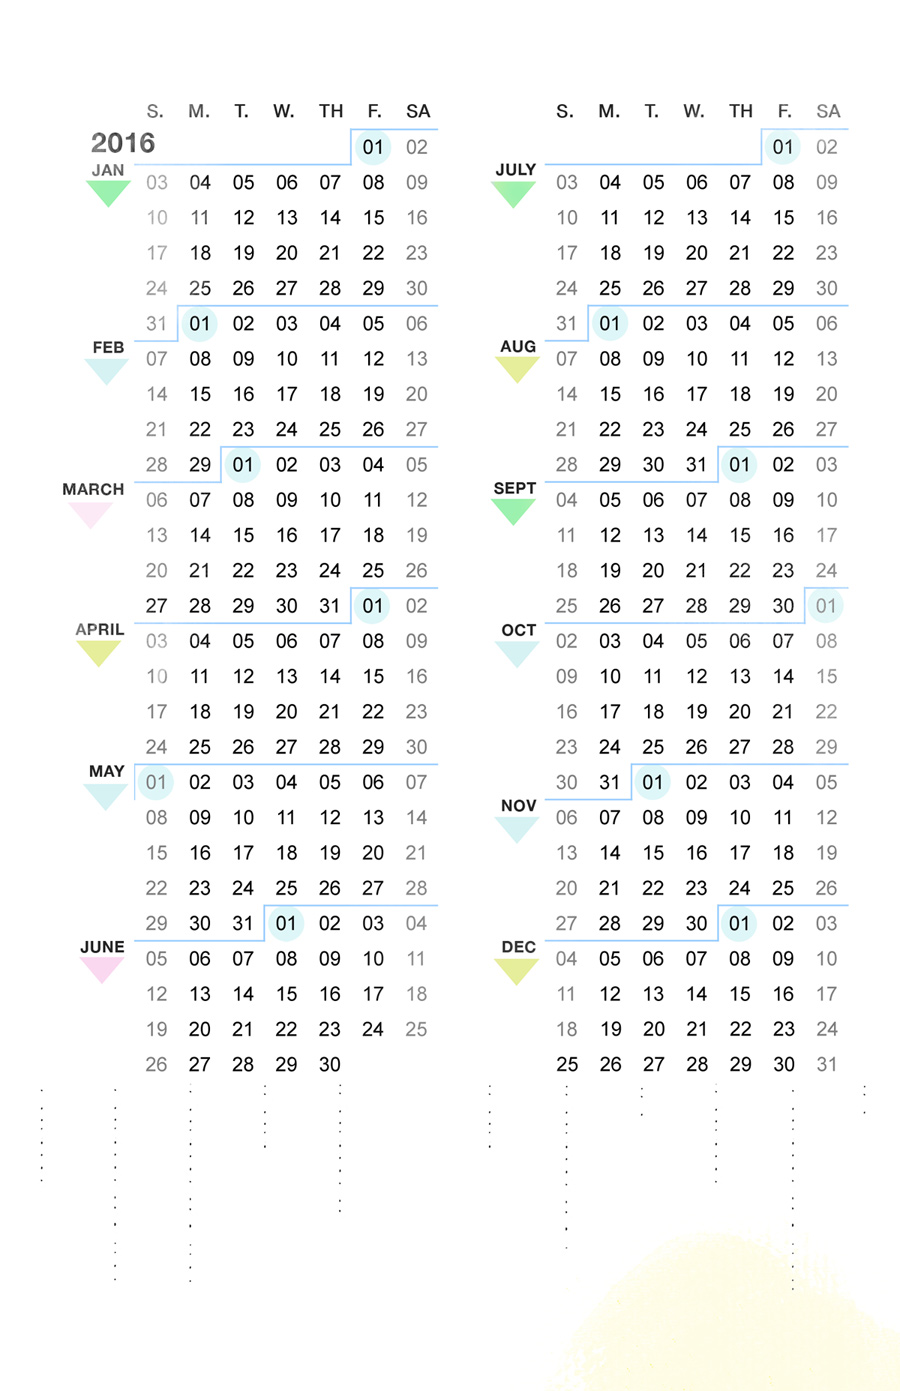 8.5 by 5.5 compact calendar by Ahhh Design #diyplanner #printable  #ARC #year